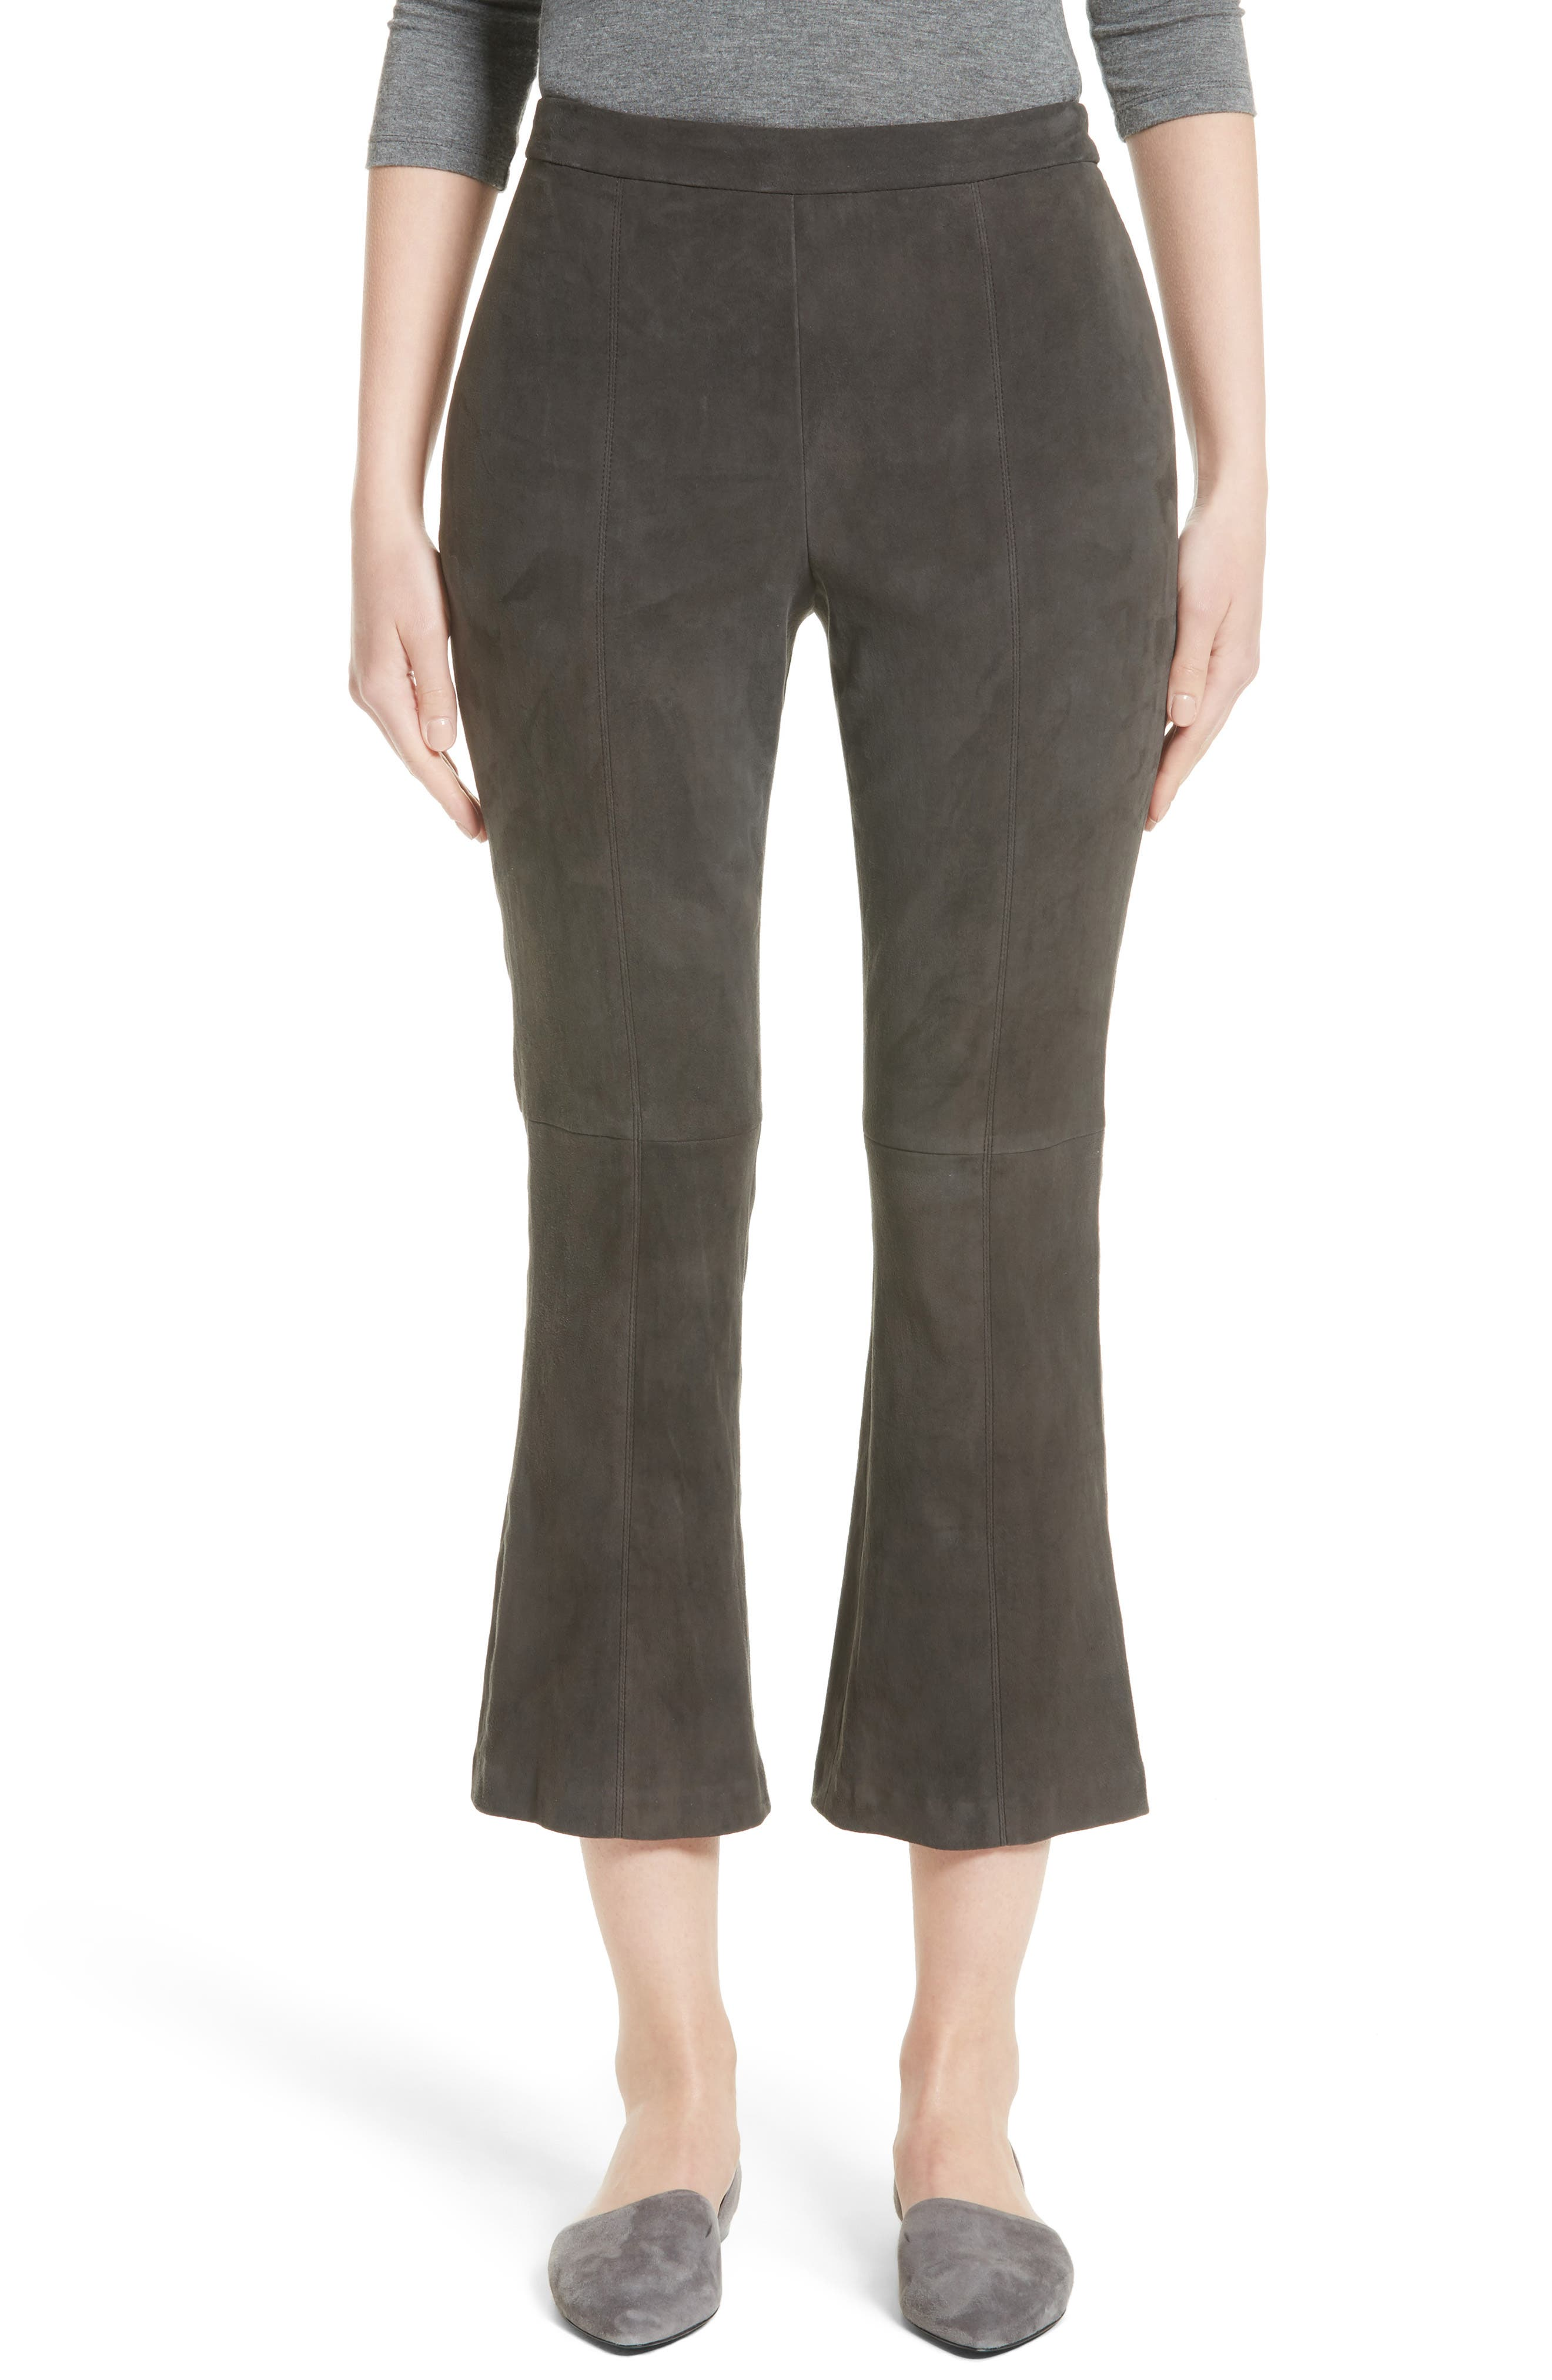 Alternate Image 1 Selected - St. John Collection Stretch Suede Capri Pants